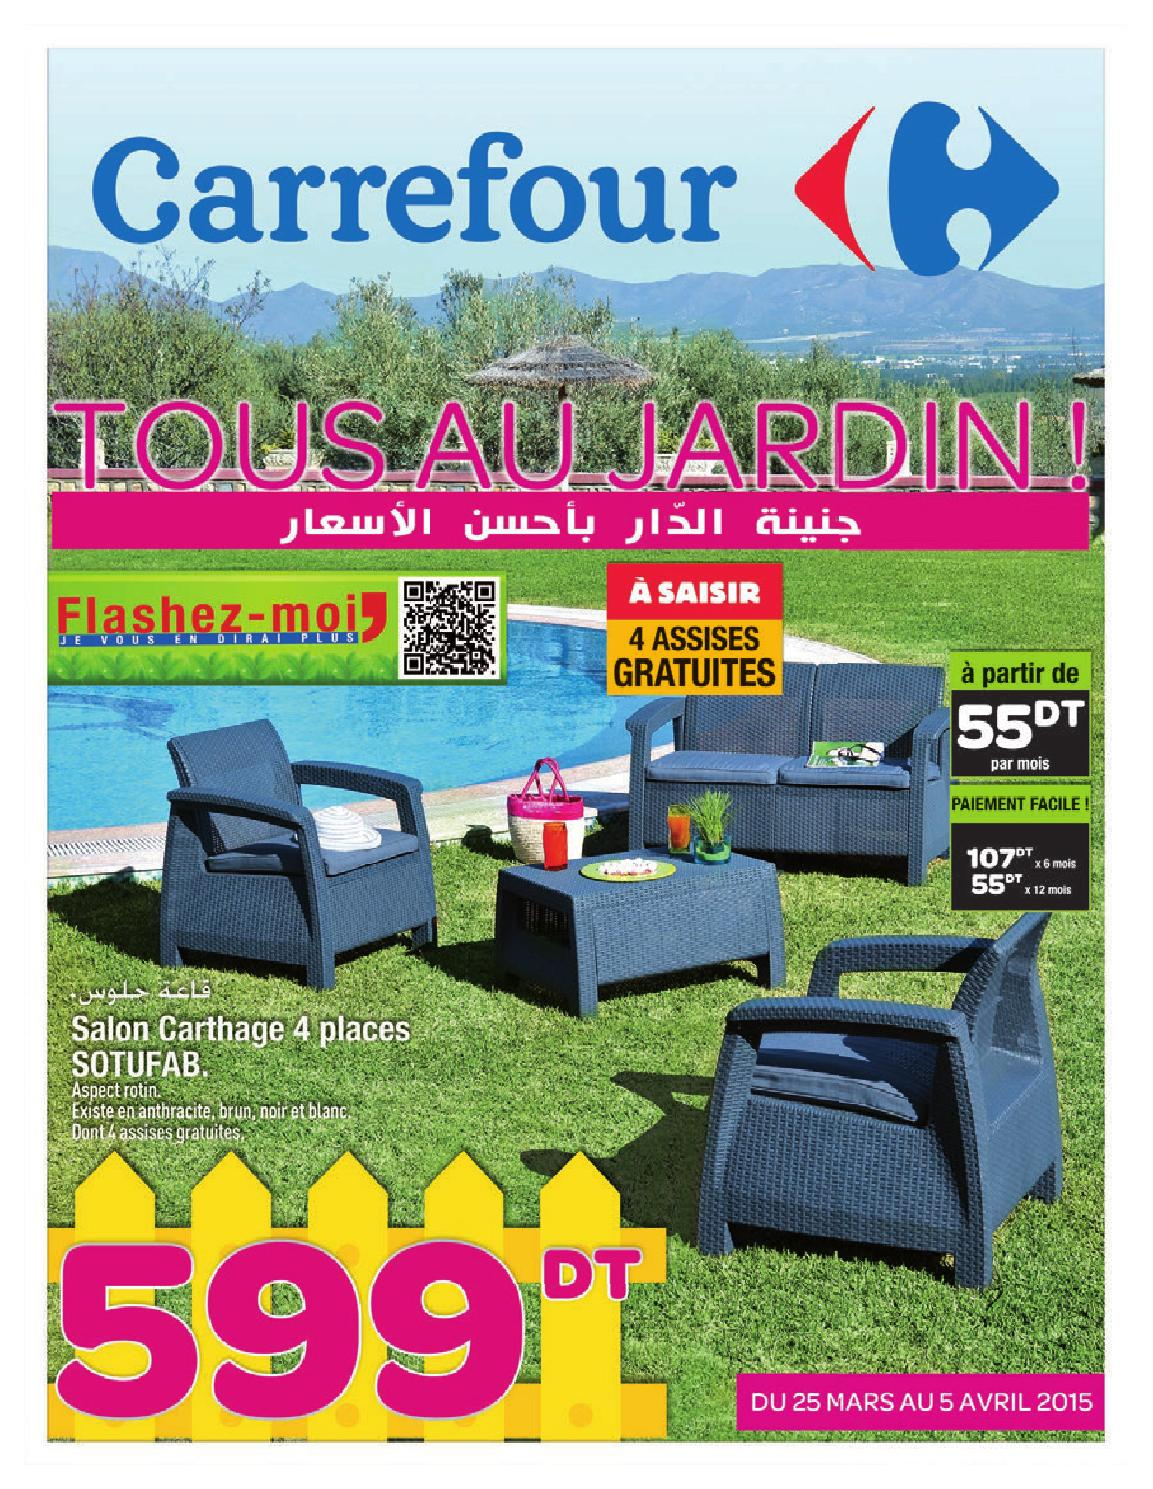 Catalogue carrefour tous au jardin by carrefour for Catalogue jardin 2015 honda